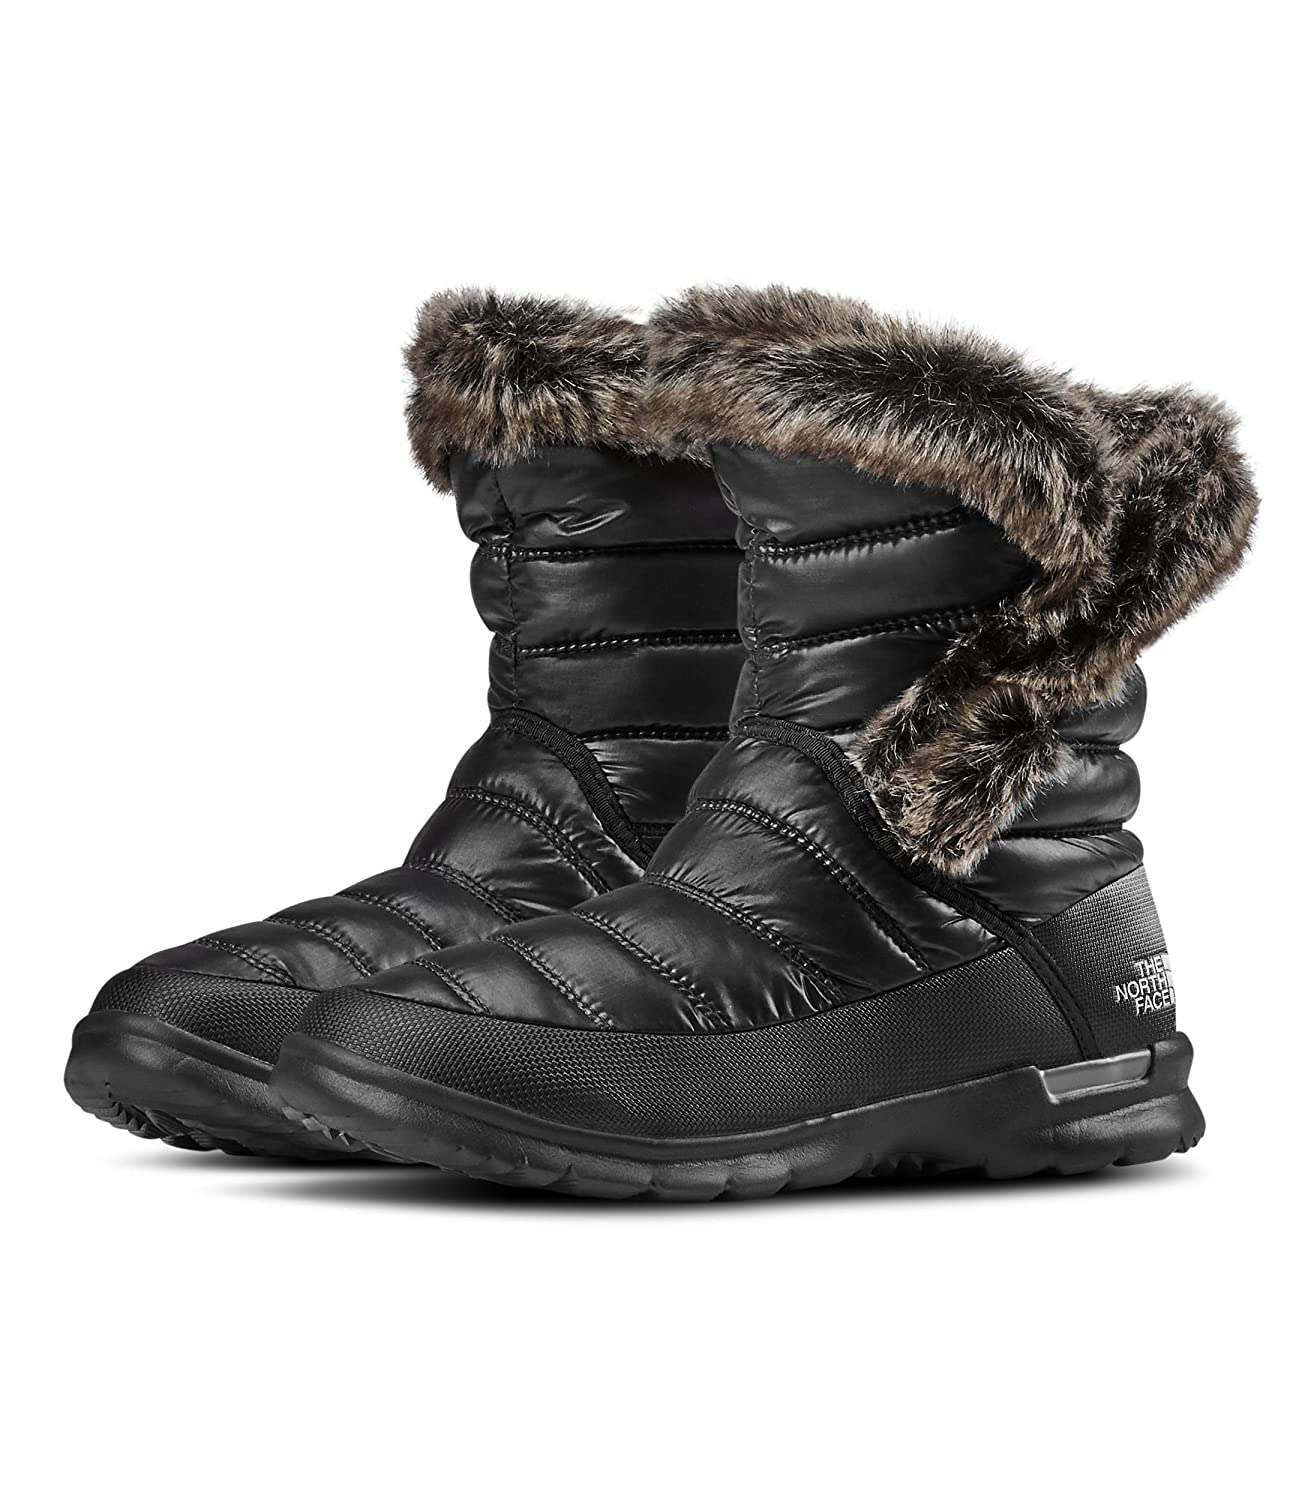 The North Face Womens Thermoball Microbaffle Bootie II B0195K74BI 11|Shiny Tnf Black & Smoked Pearl Grey